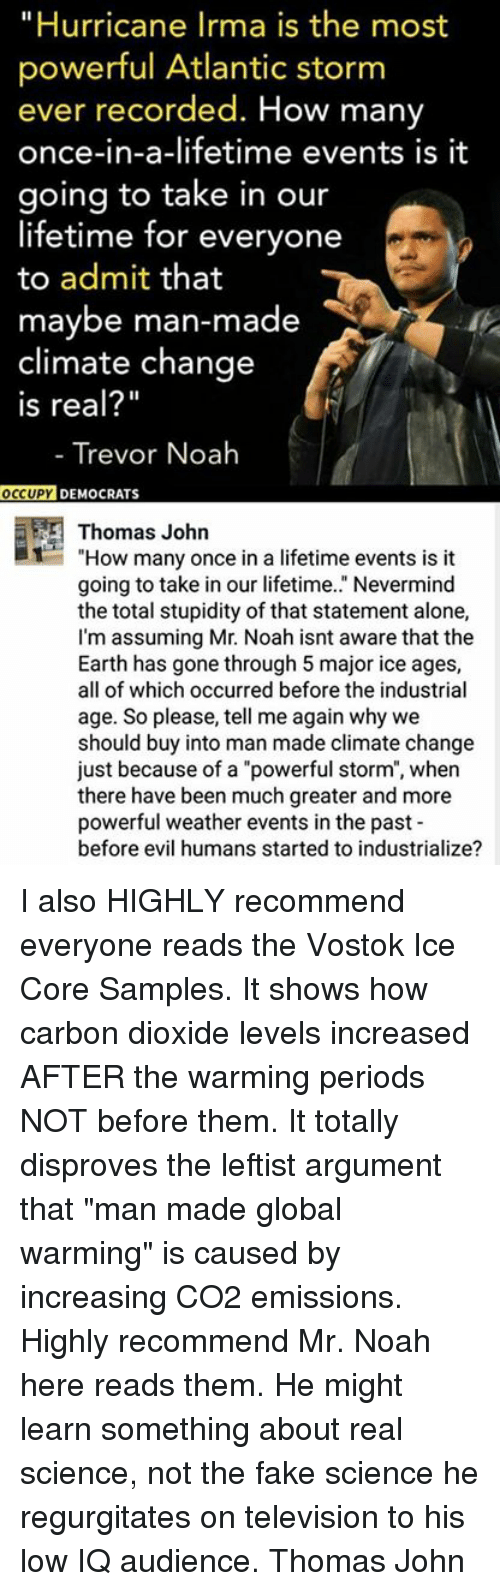 """Being Alone, Fake, and Global Warming: """"Hurricane Irma is the most  powerful Atlantic storm  ever recorded. How many  once-in-a-lifetime events is it  going to take in our  lifetime for everyone  to admit that  maybe man-made  climate change  Is real?""""  - Trevor Noah  OC  CUPY DEMOCRATS  Thomas John  1""""How many once in a lifetime events is it  going to take in our lifetime.."""" Nevermind  the total stupidity of that statement alone,  I'm assuming Mr. Noah isnt aware that the  Earth has gone through 5 major ice ages,  all of which occurred before the industrial  age. So please, tell me again why we  should buy into man made climate change  just because of a """"powerful storm"""", when  there have been much greater and more  powerful weather events in the past  before evil humans started to industrialize? I also HIGHLY recommend everyone reads the Vostok Ice Core Samples. It shows how carbon dioxide levels increased AFTER the warming periods NOT before them. It totally disproves the leftist argument that """"man made global warming"""" is caused by increasing CO2 emissions. Highly recommend Mr. Noah here reads them. He might learn something about real science, not the fake science he regurgitates on television to his low IQ audience.  Thomas John"""